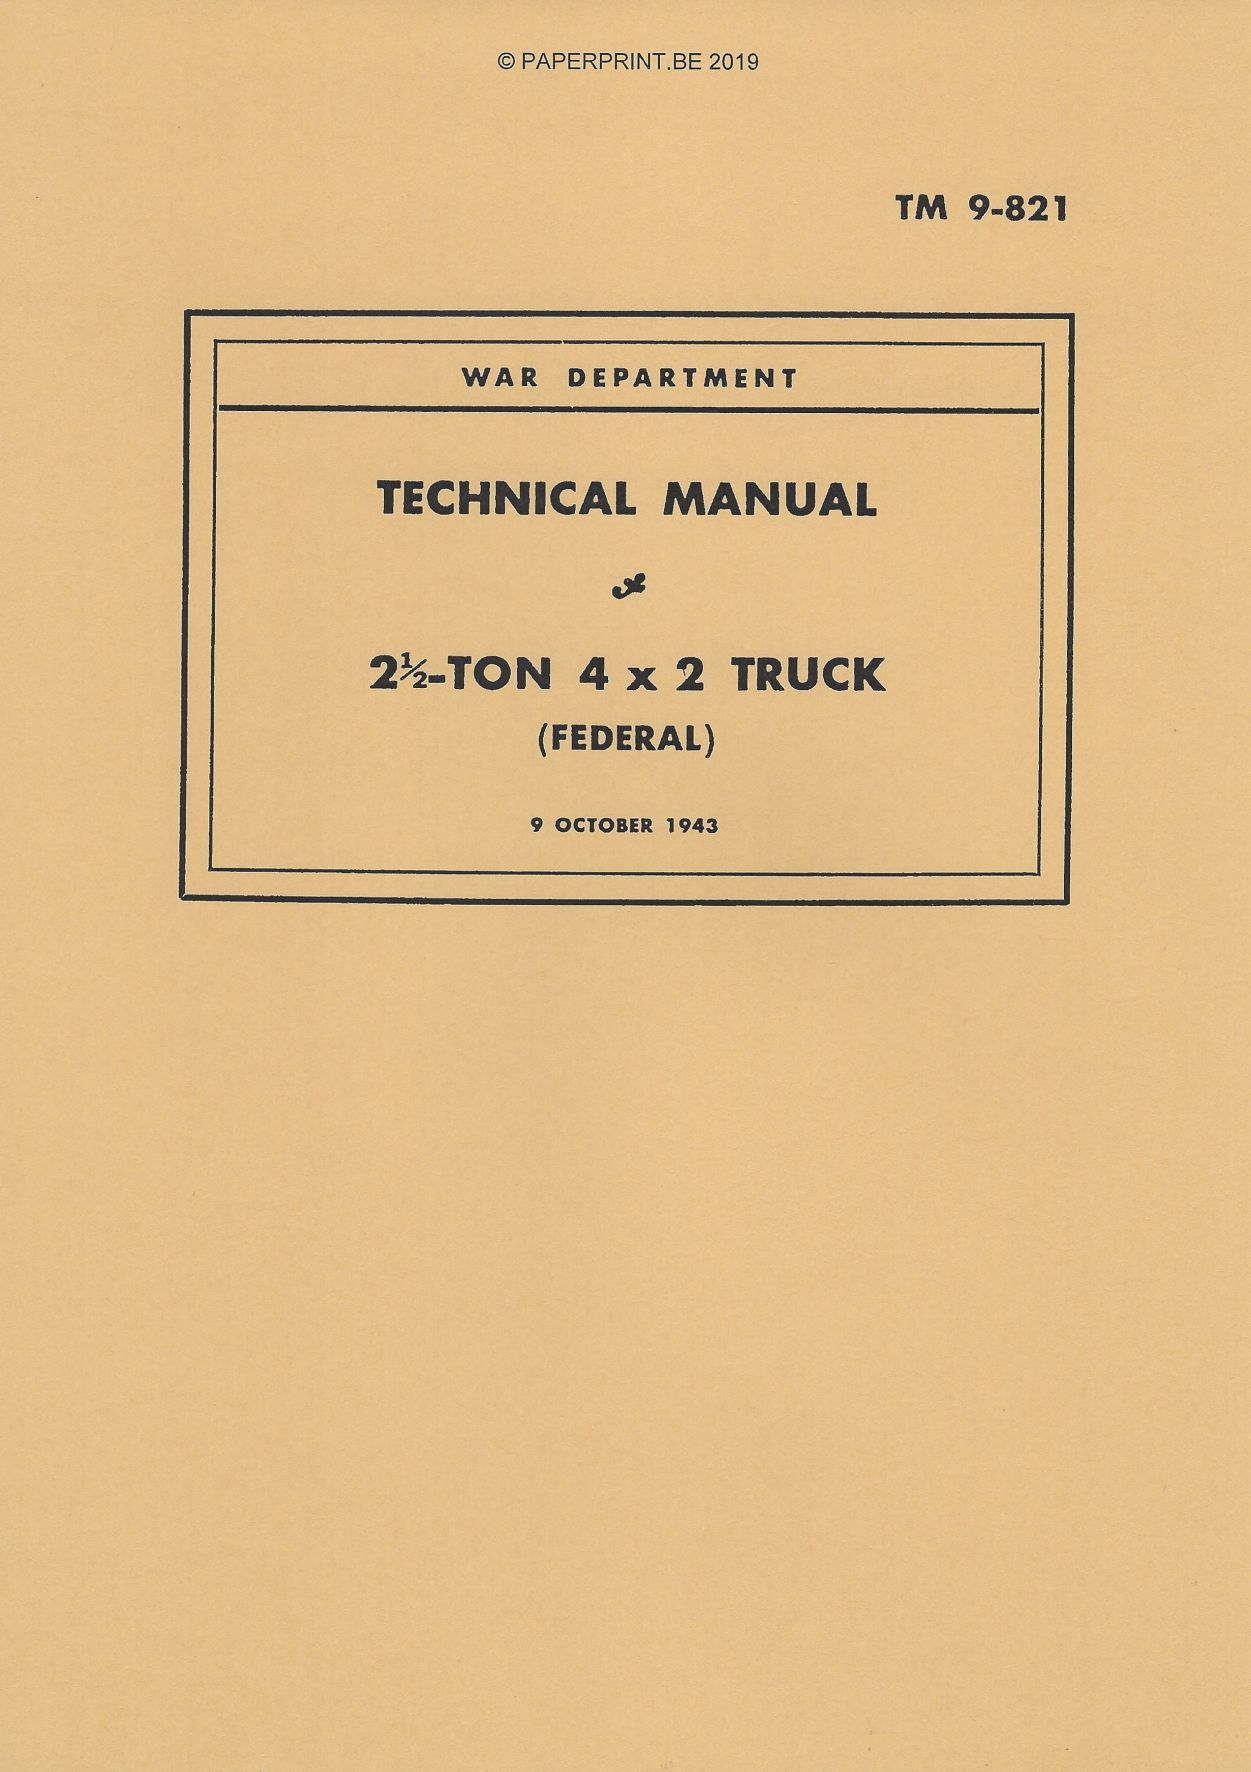 TM 9-821 US FEDERAL 2  ½ TON 4x2 TRUCK